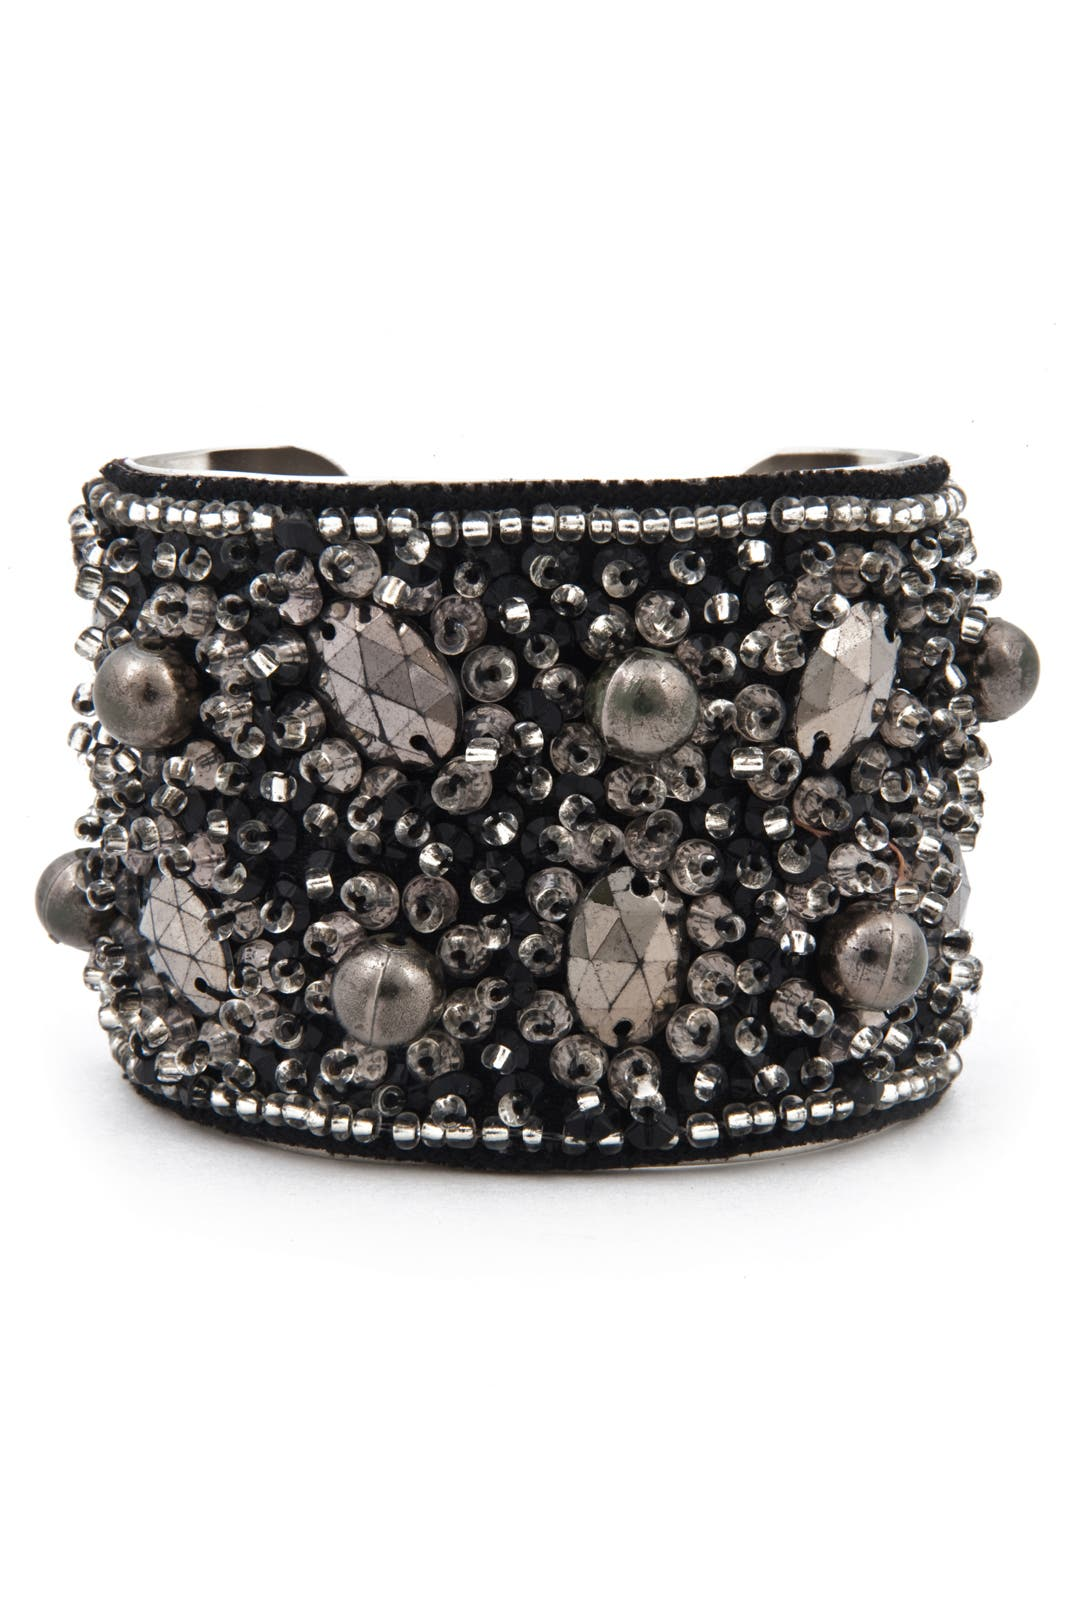 Beaded Rocker Jewel Cuff by AV Max